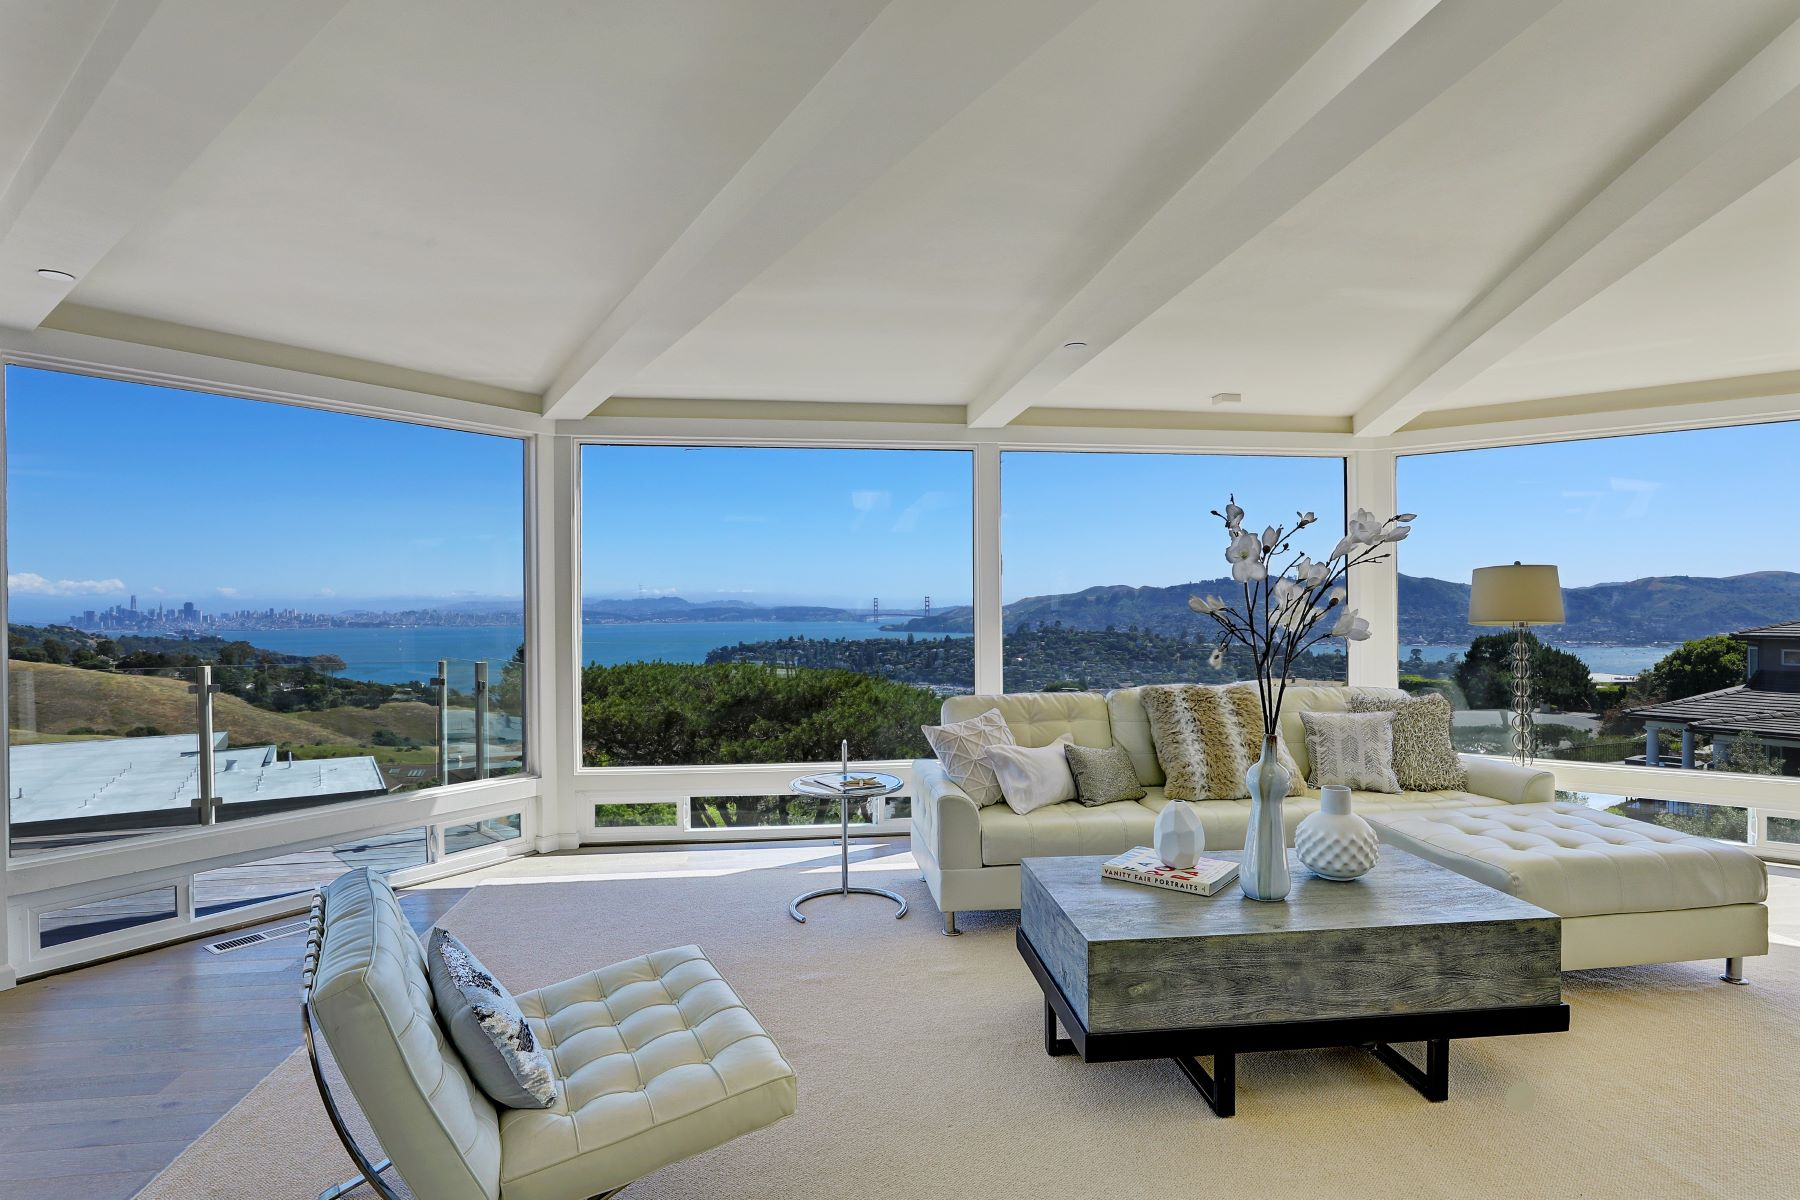 Single Family Home for Sale at Expansive, Unobstructed Views! 2 Heathcliff Dr Tiburon, California, 94920 United States